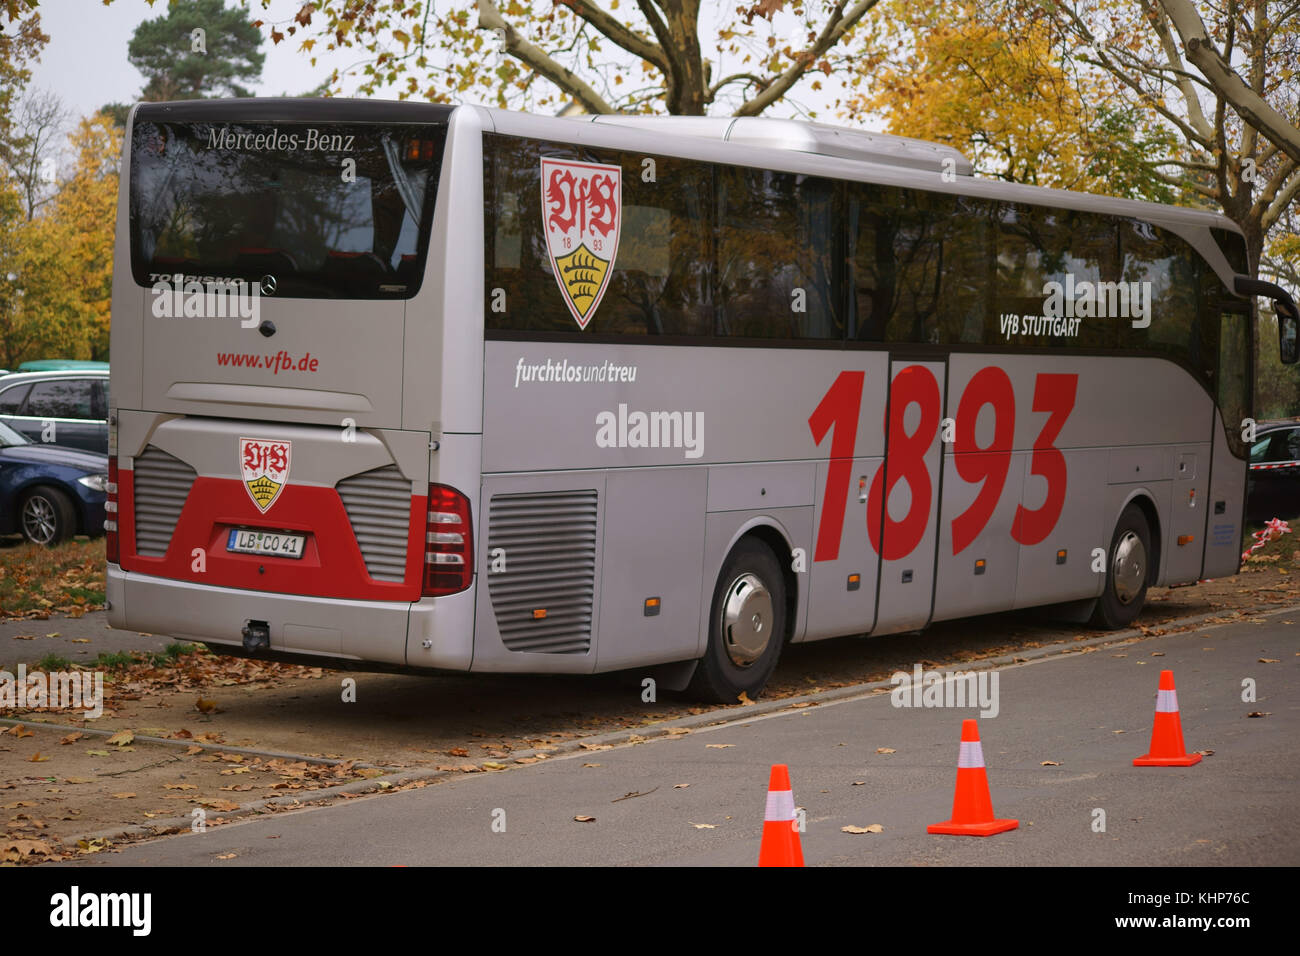 Mainz, Germany - November 04, 2017: The team bus of the football club VFB Stuttgart with coats of arms at a game - Stock Image